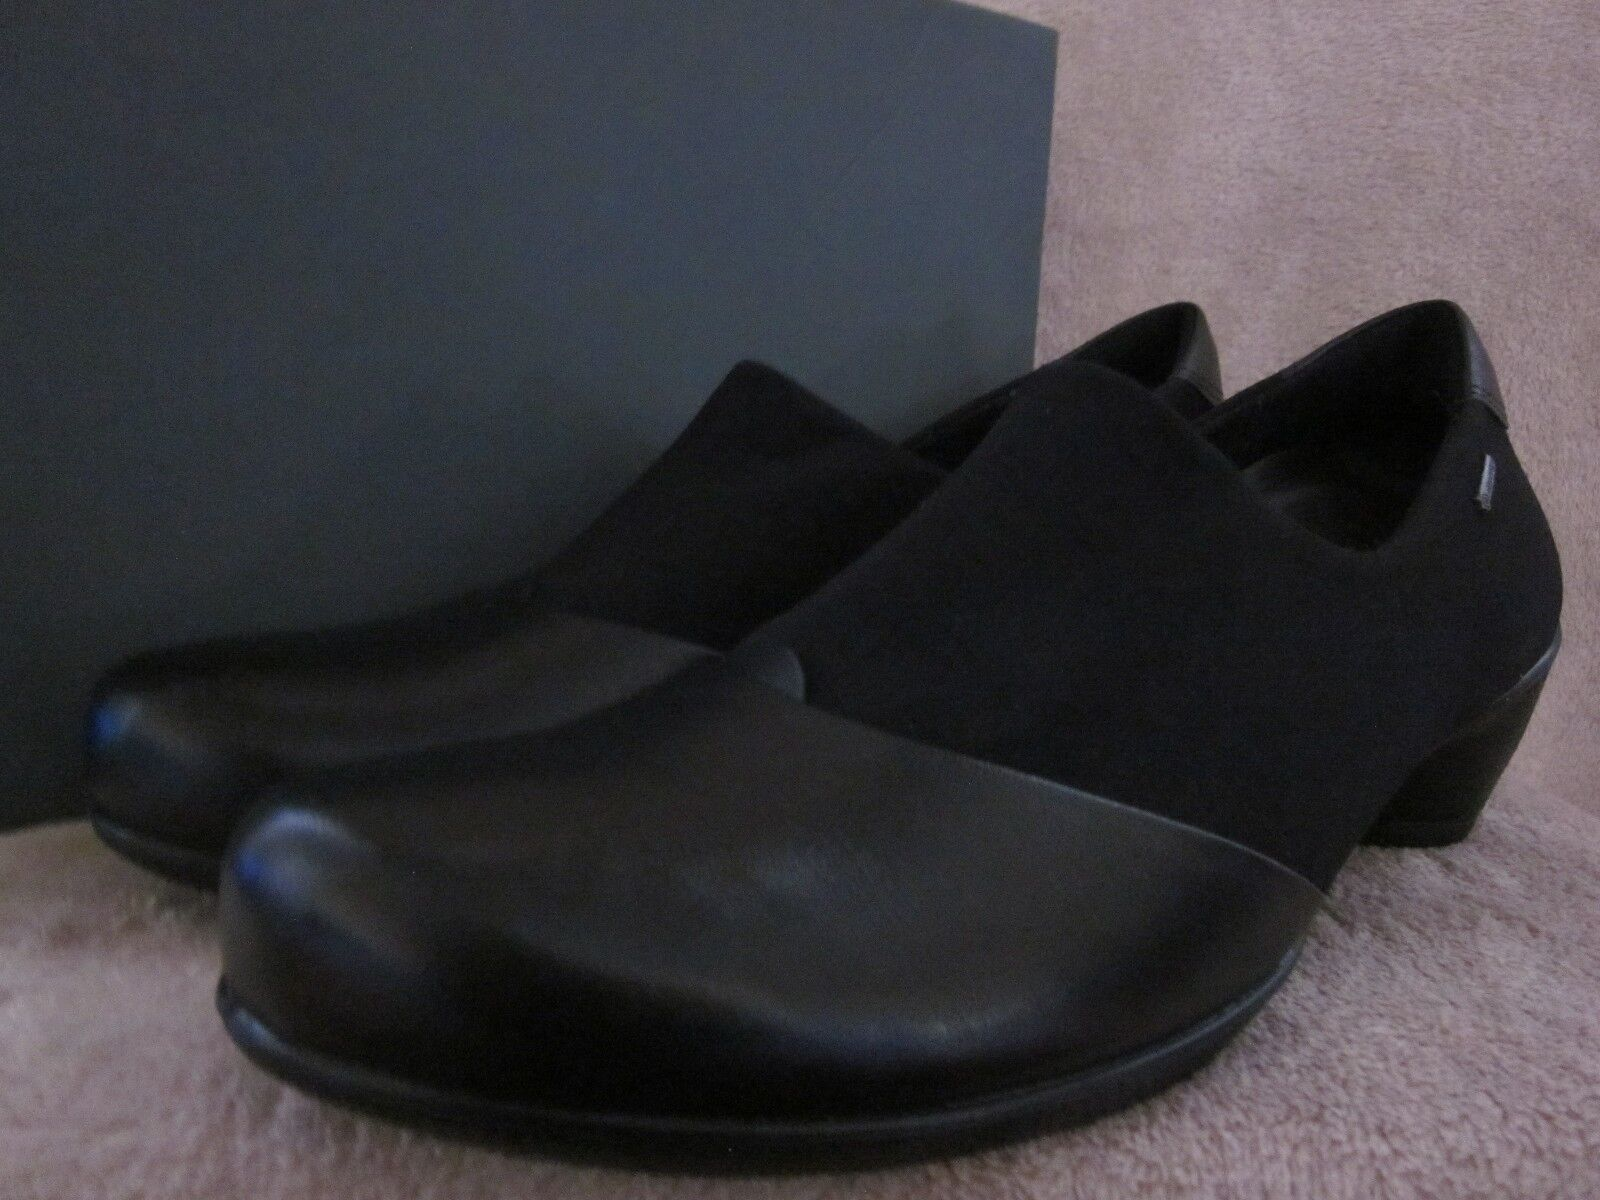 ECCO donna Sculpturosso nero Leather Comfort Slip On sautope US 9 - 9.5 EU 40 NWB